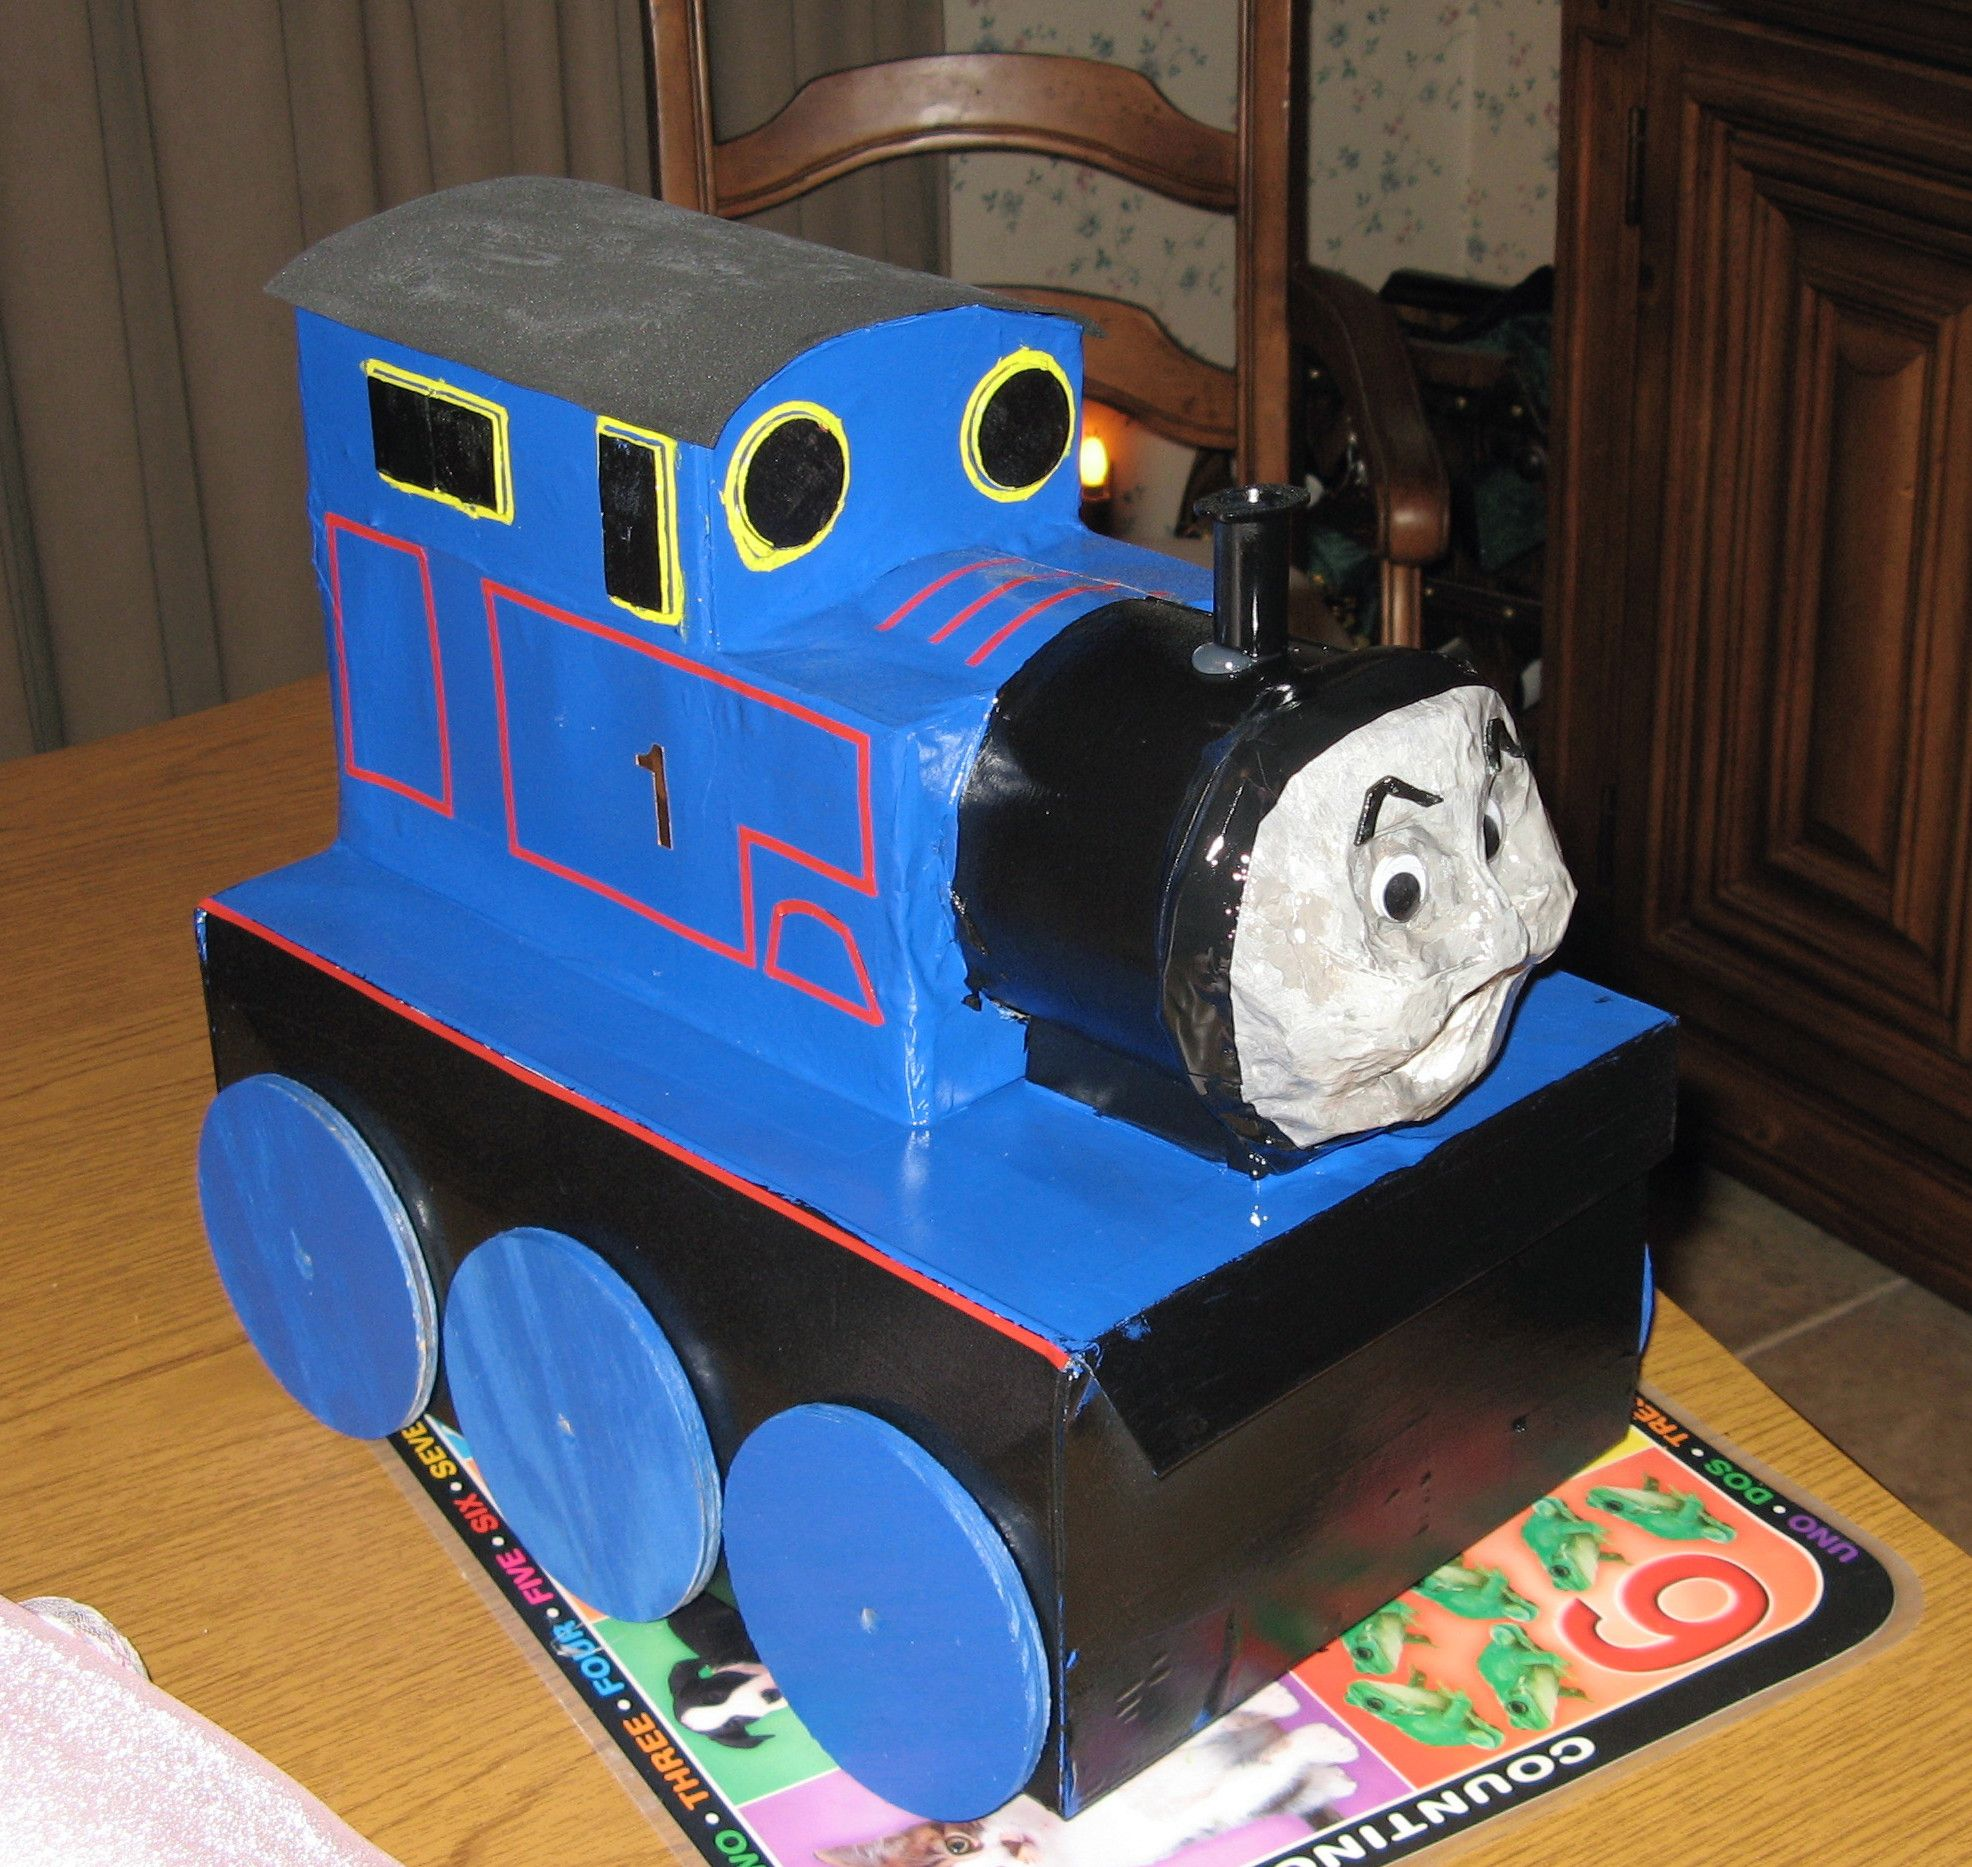 Thomas the Tank Engine Valentine box. (With images